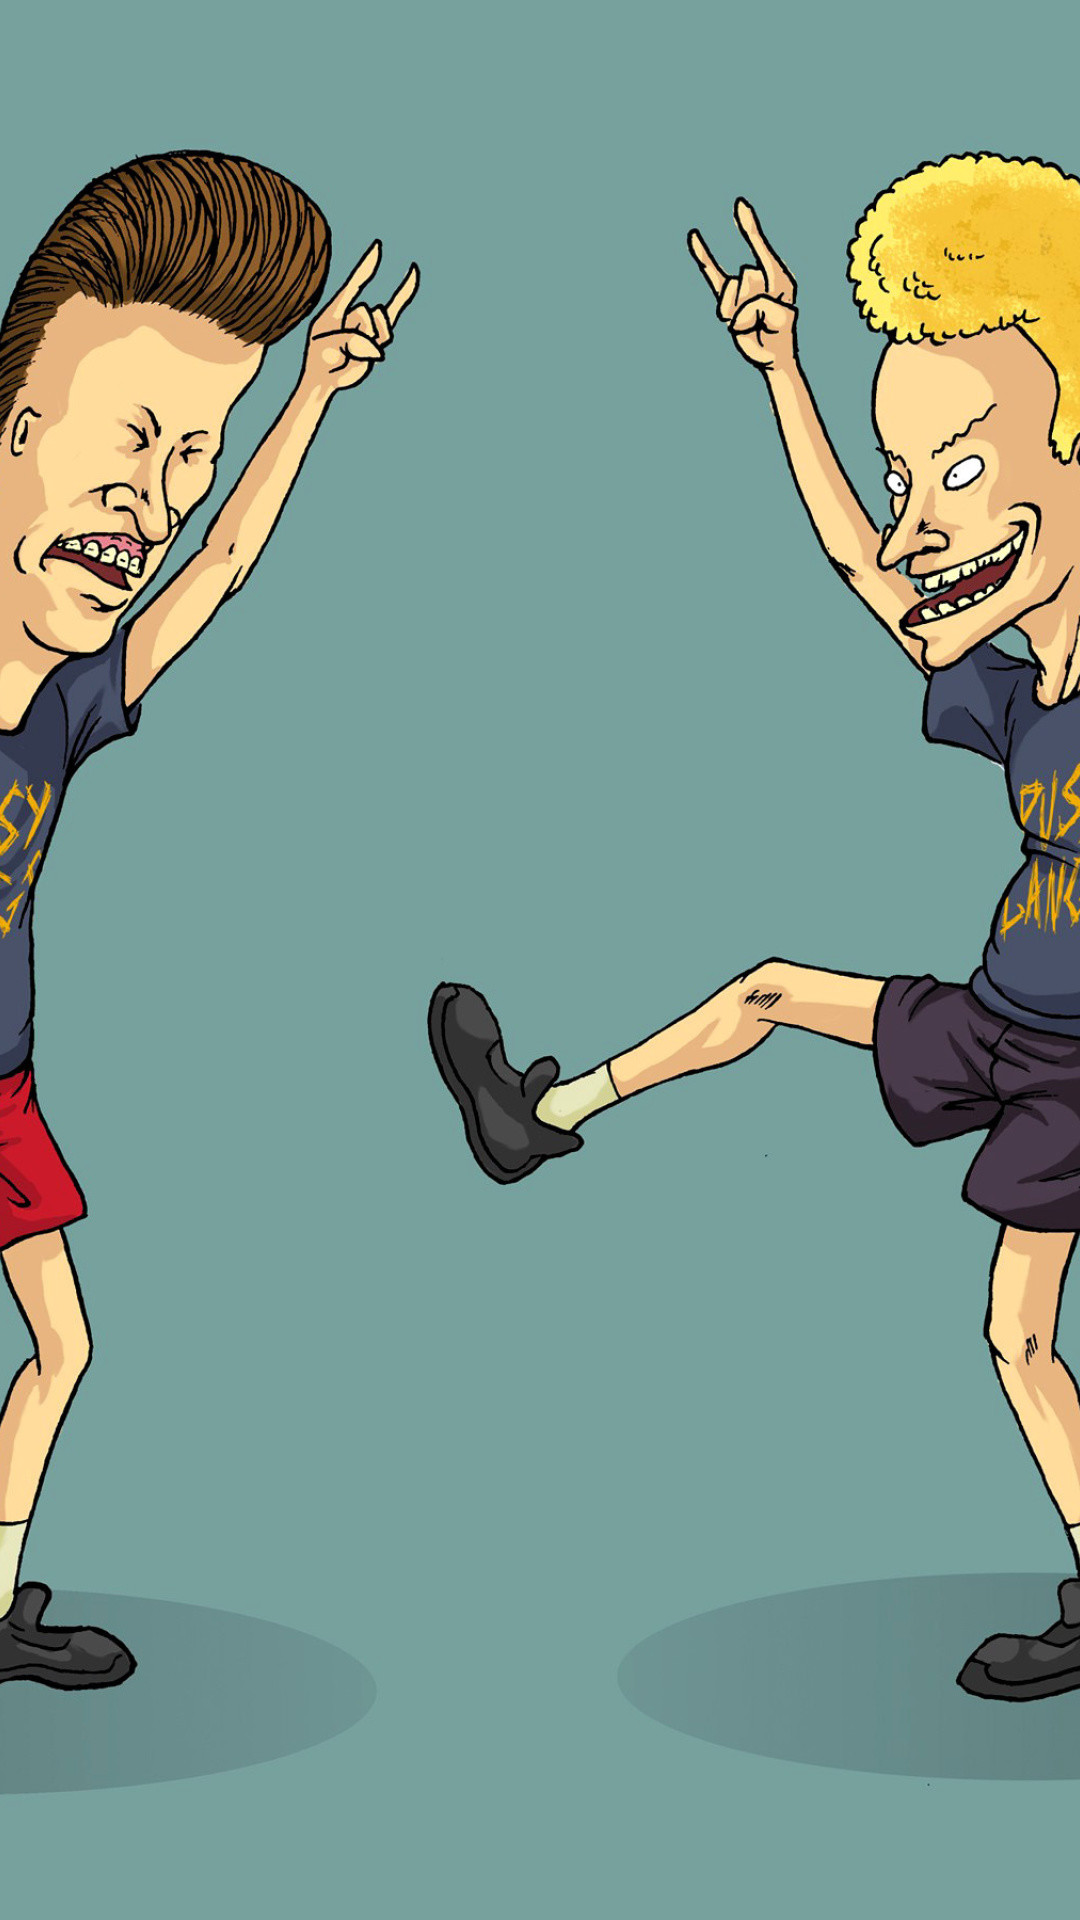 1080x1920 Beavis and butt head iphone 6 mobile hd photos